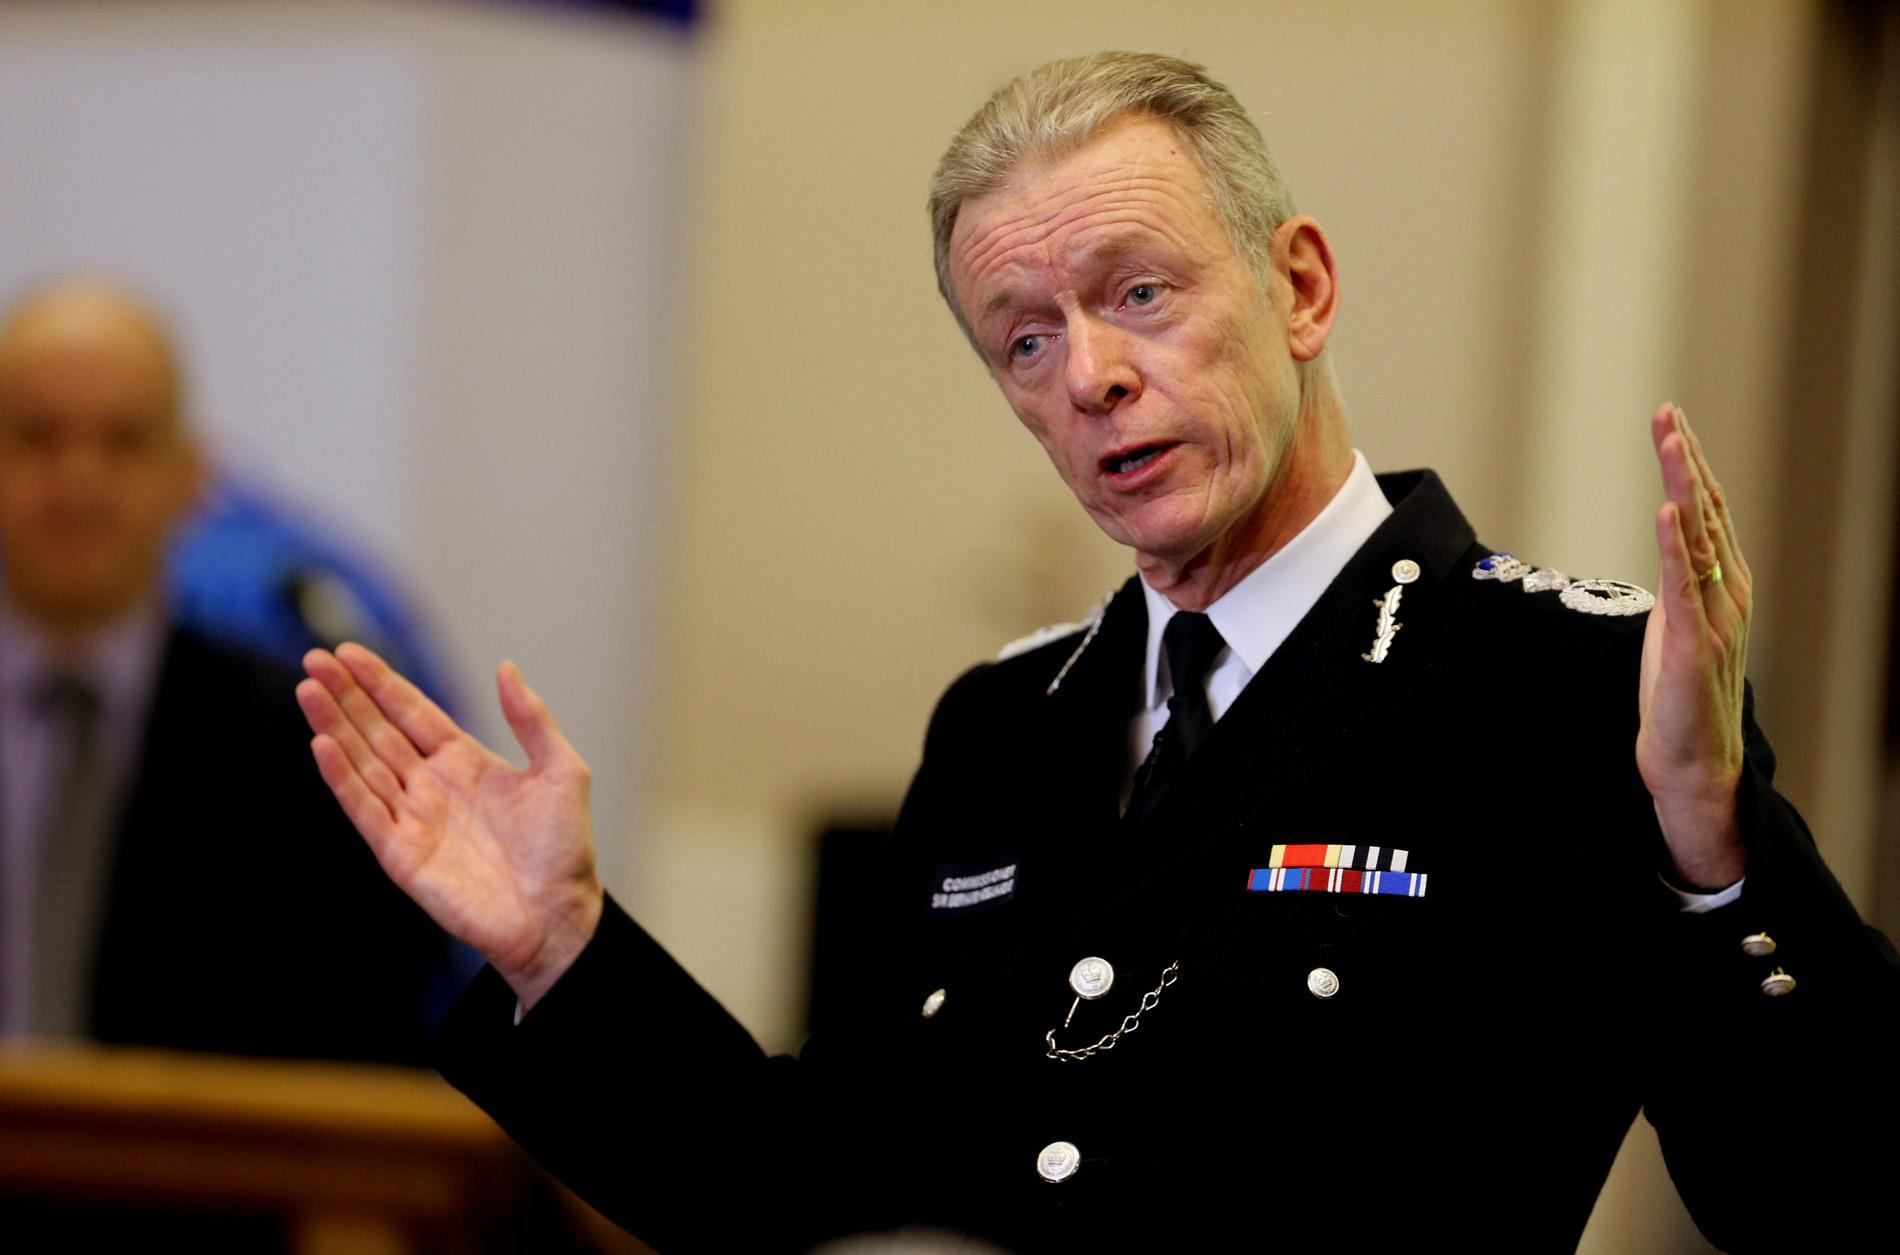 Met Police chief challenged by whistleblower during radio phone-in